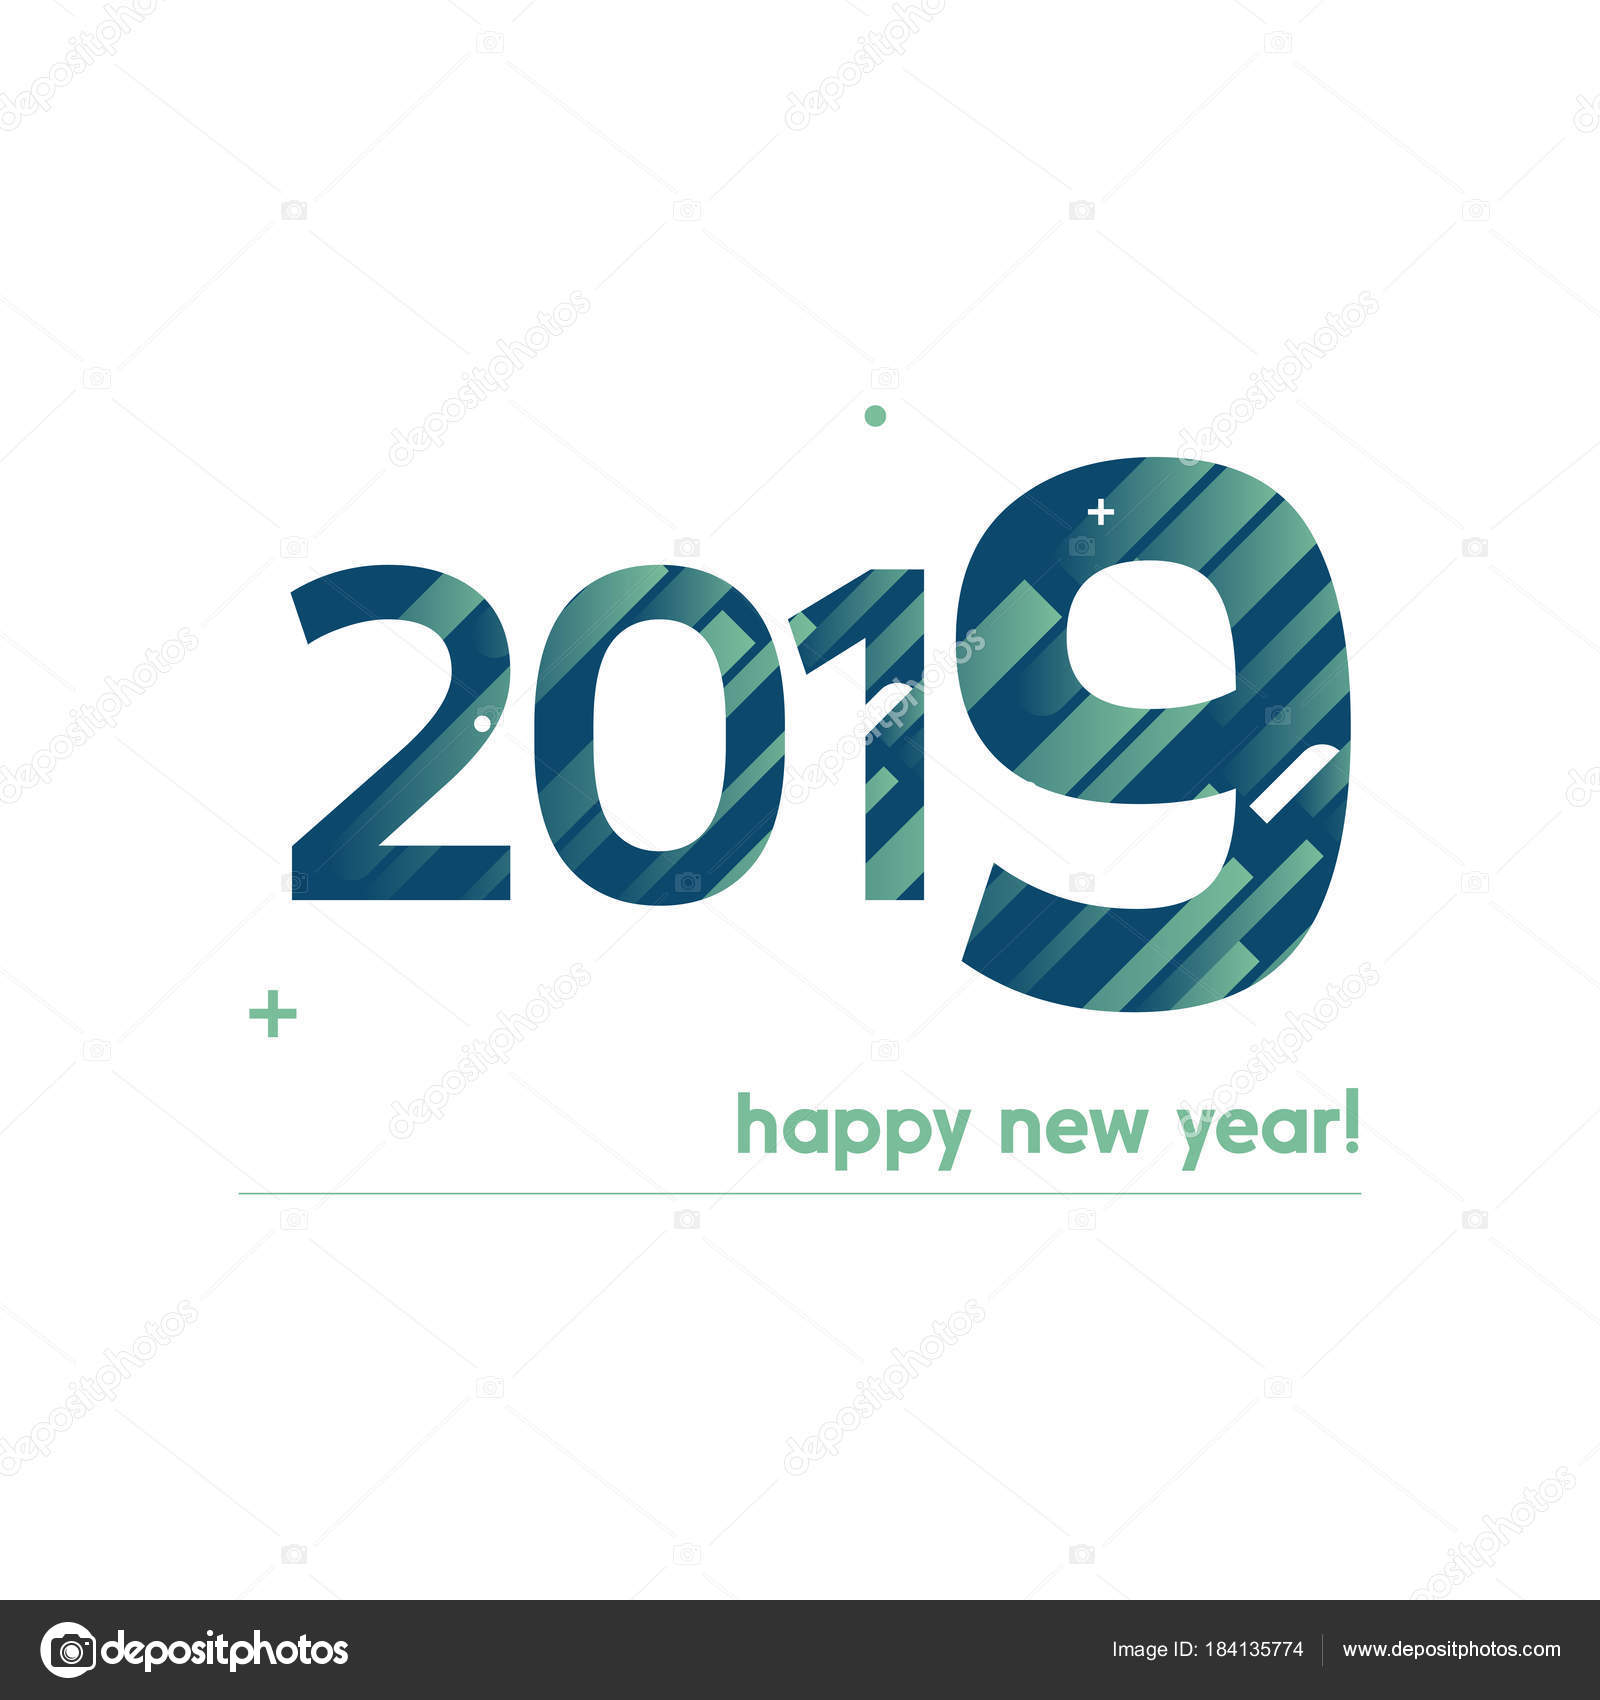 Happy New Year 2019 Vector Illustration - Bold Text with